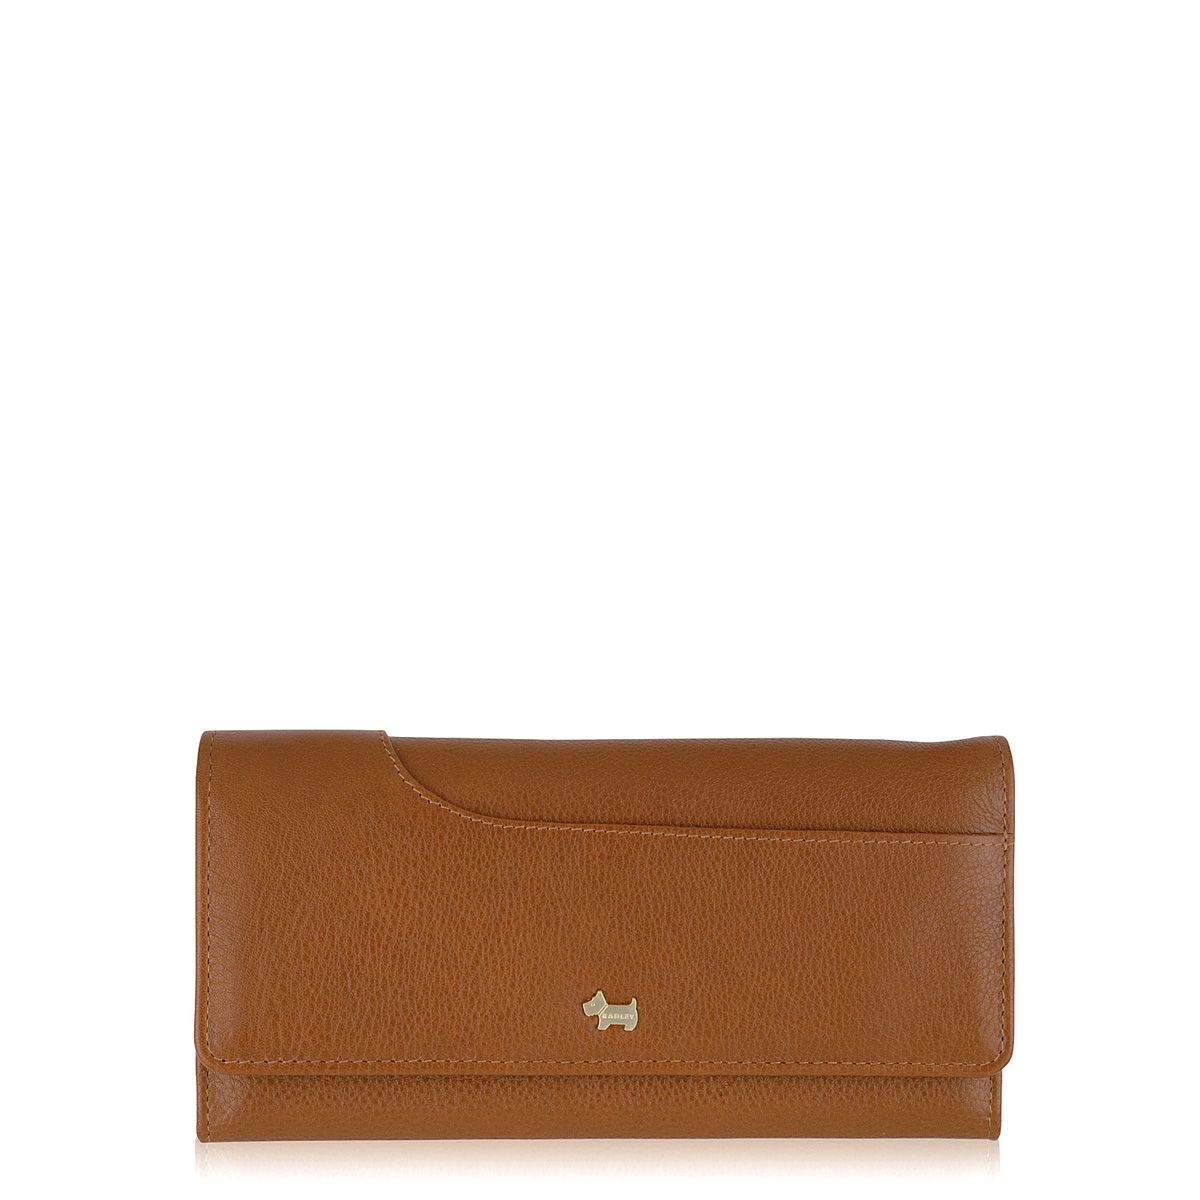 Radley Pocketbag tan large flapover purse Tan